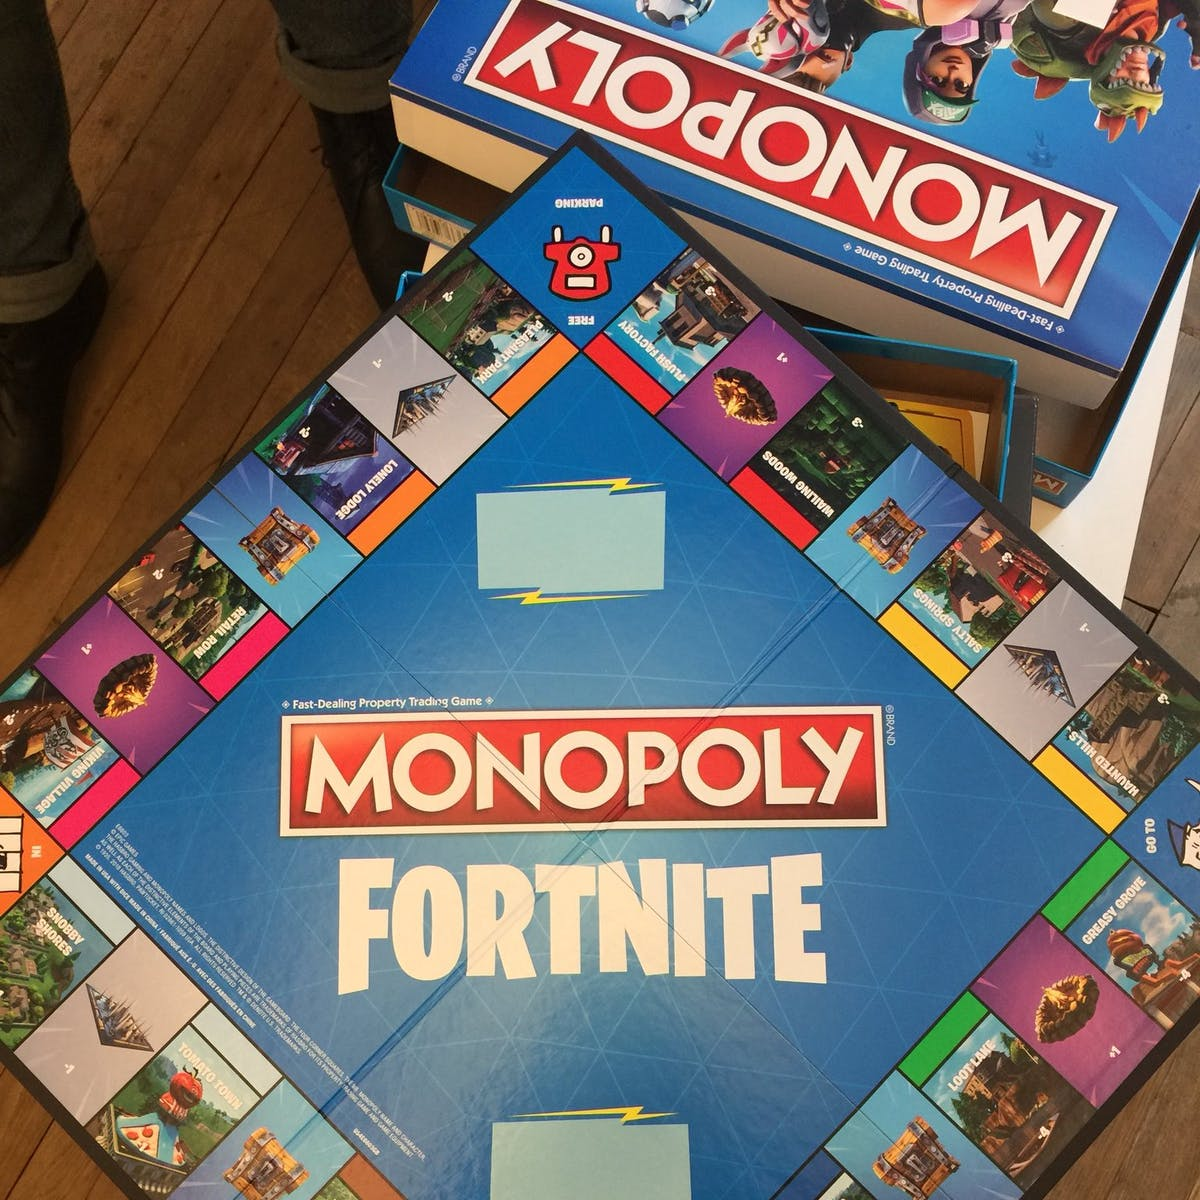 fortnite monopoly review nothing like either game but still a lot of fun inverse - fortnite monopoly rules pdf english